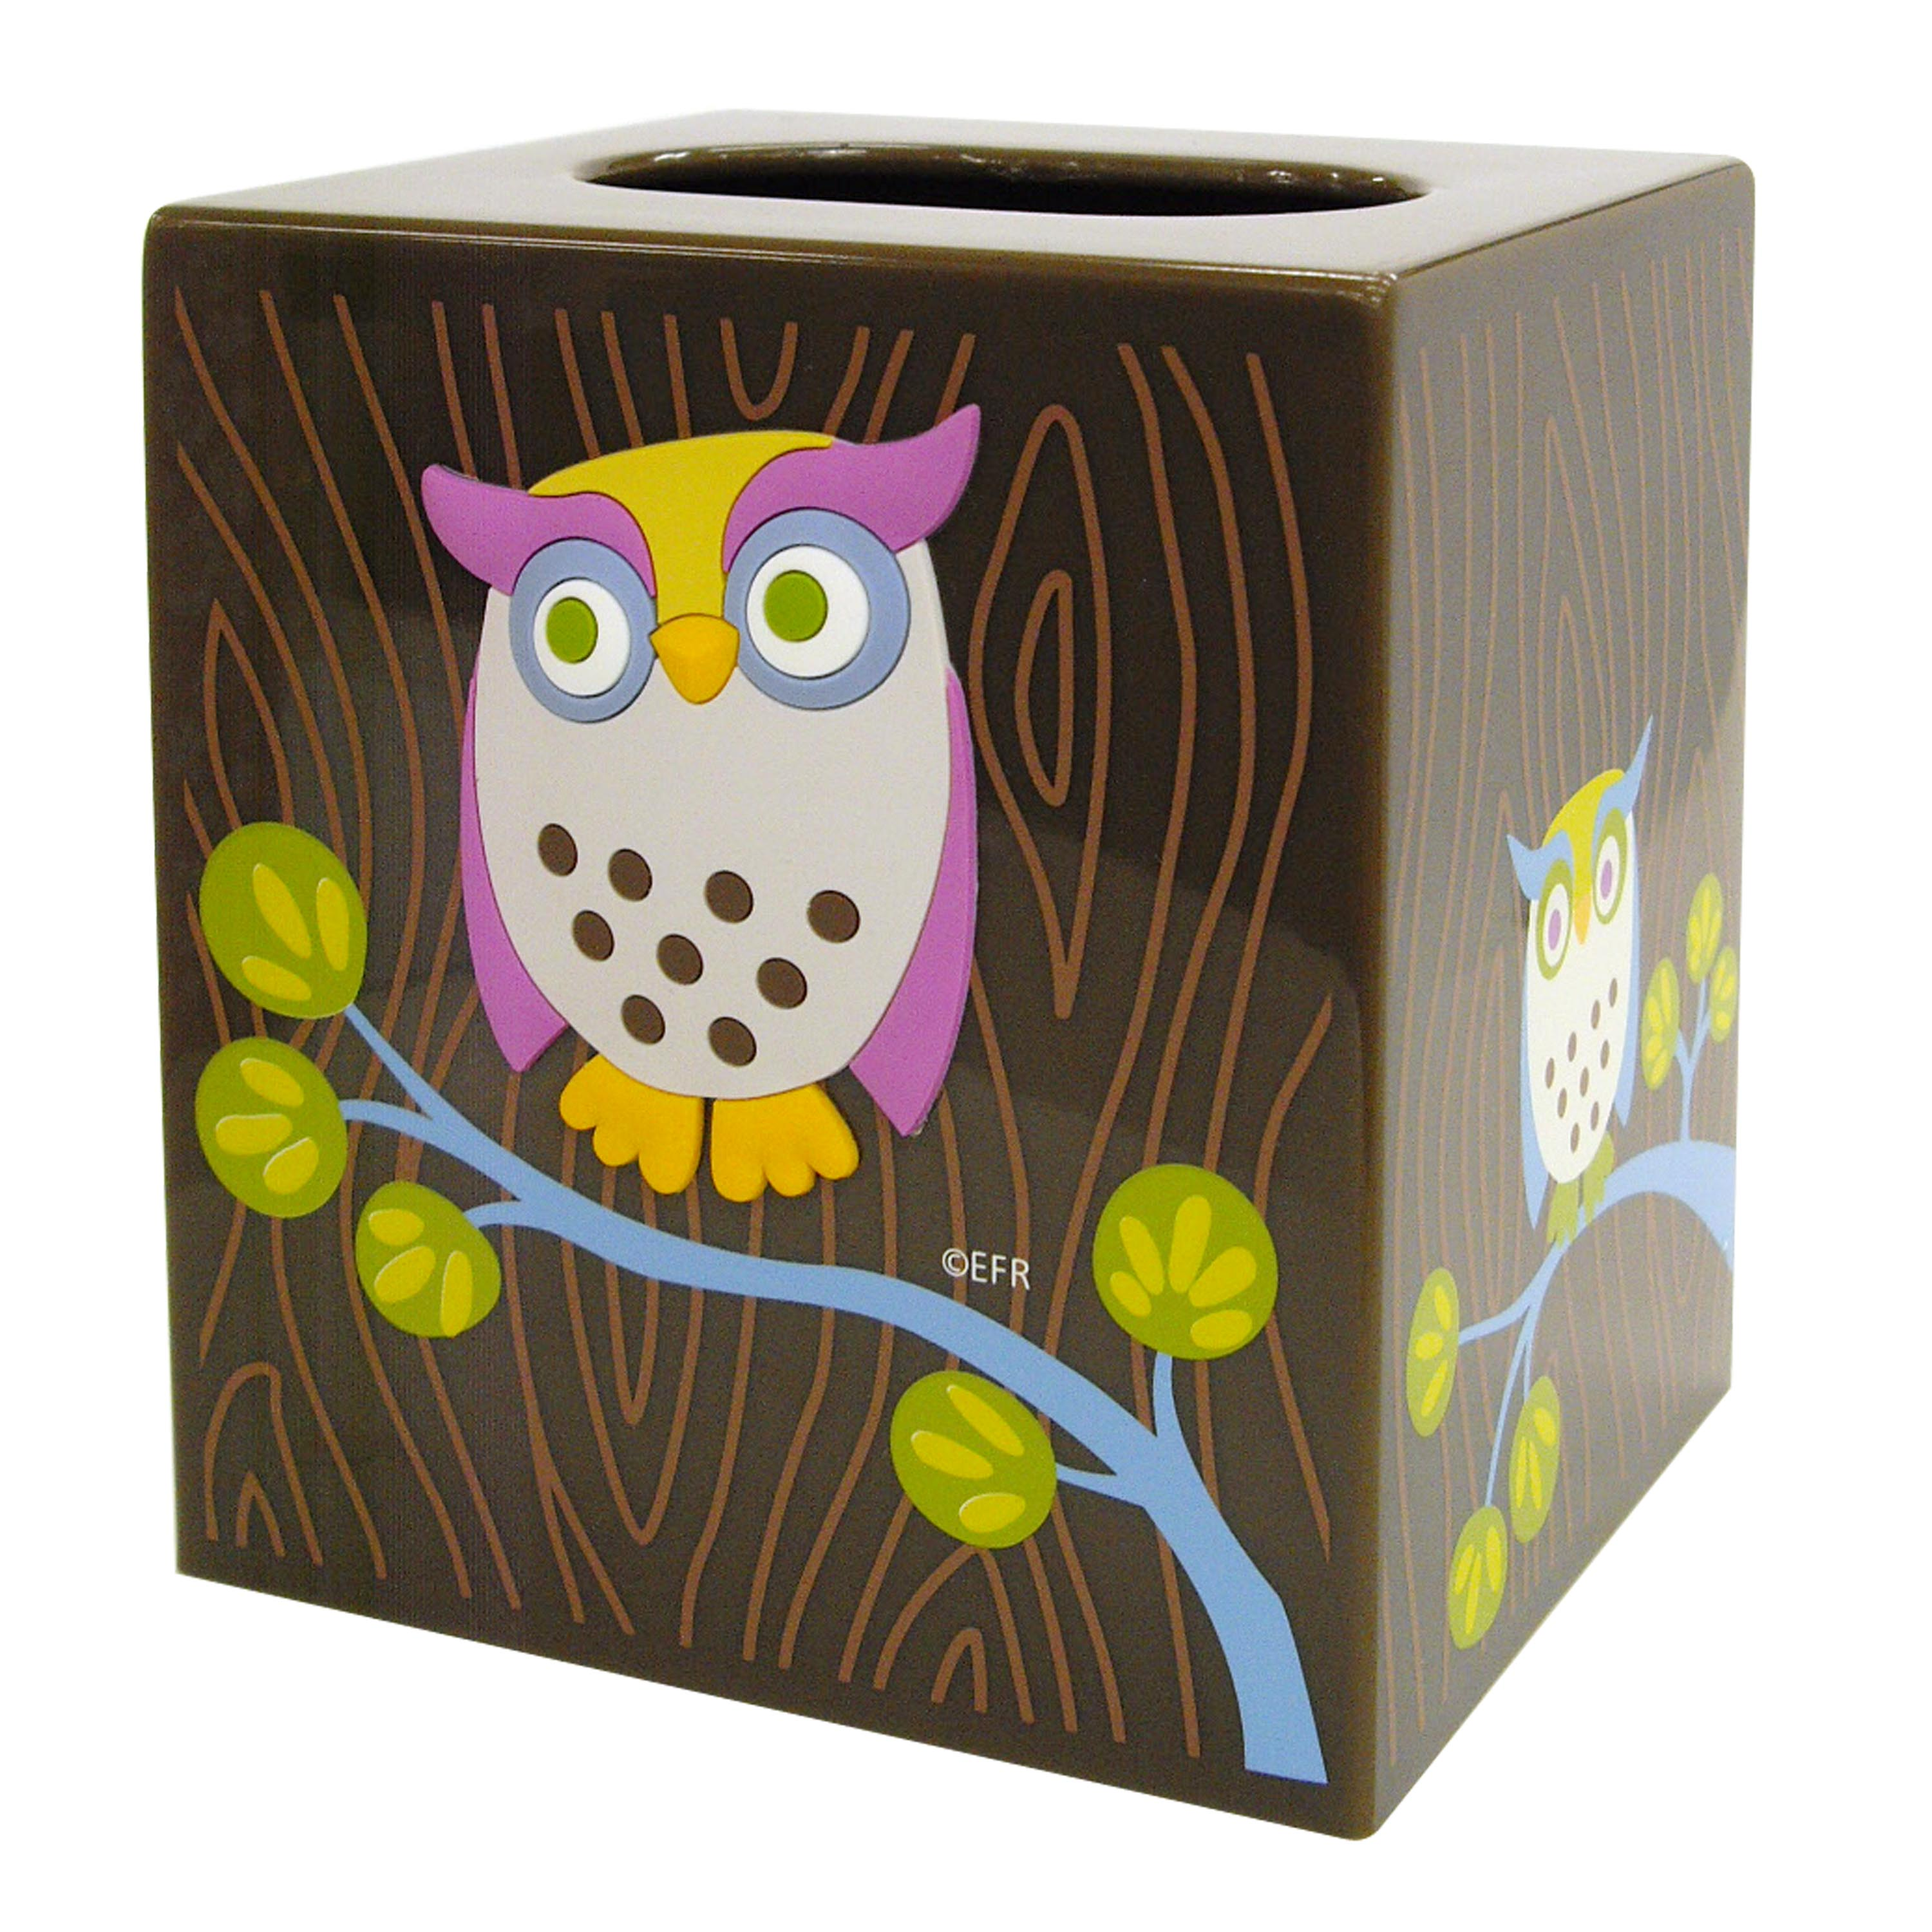 Awesome Owls Collection by Allure Home Creation, items sold separately